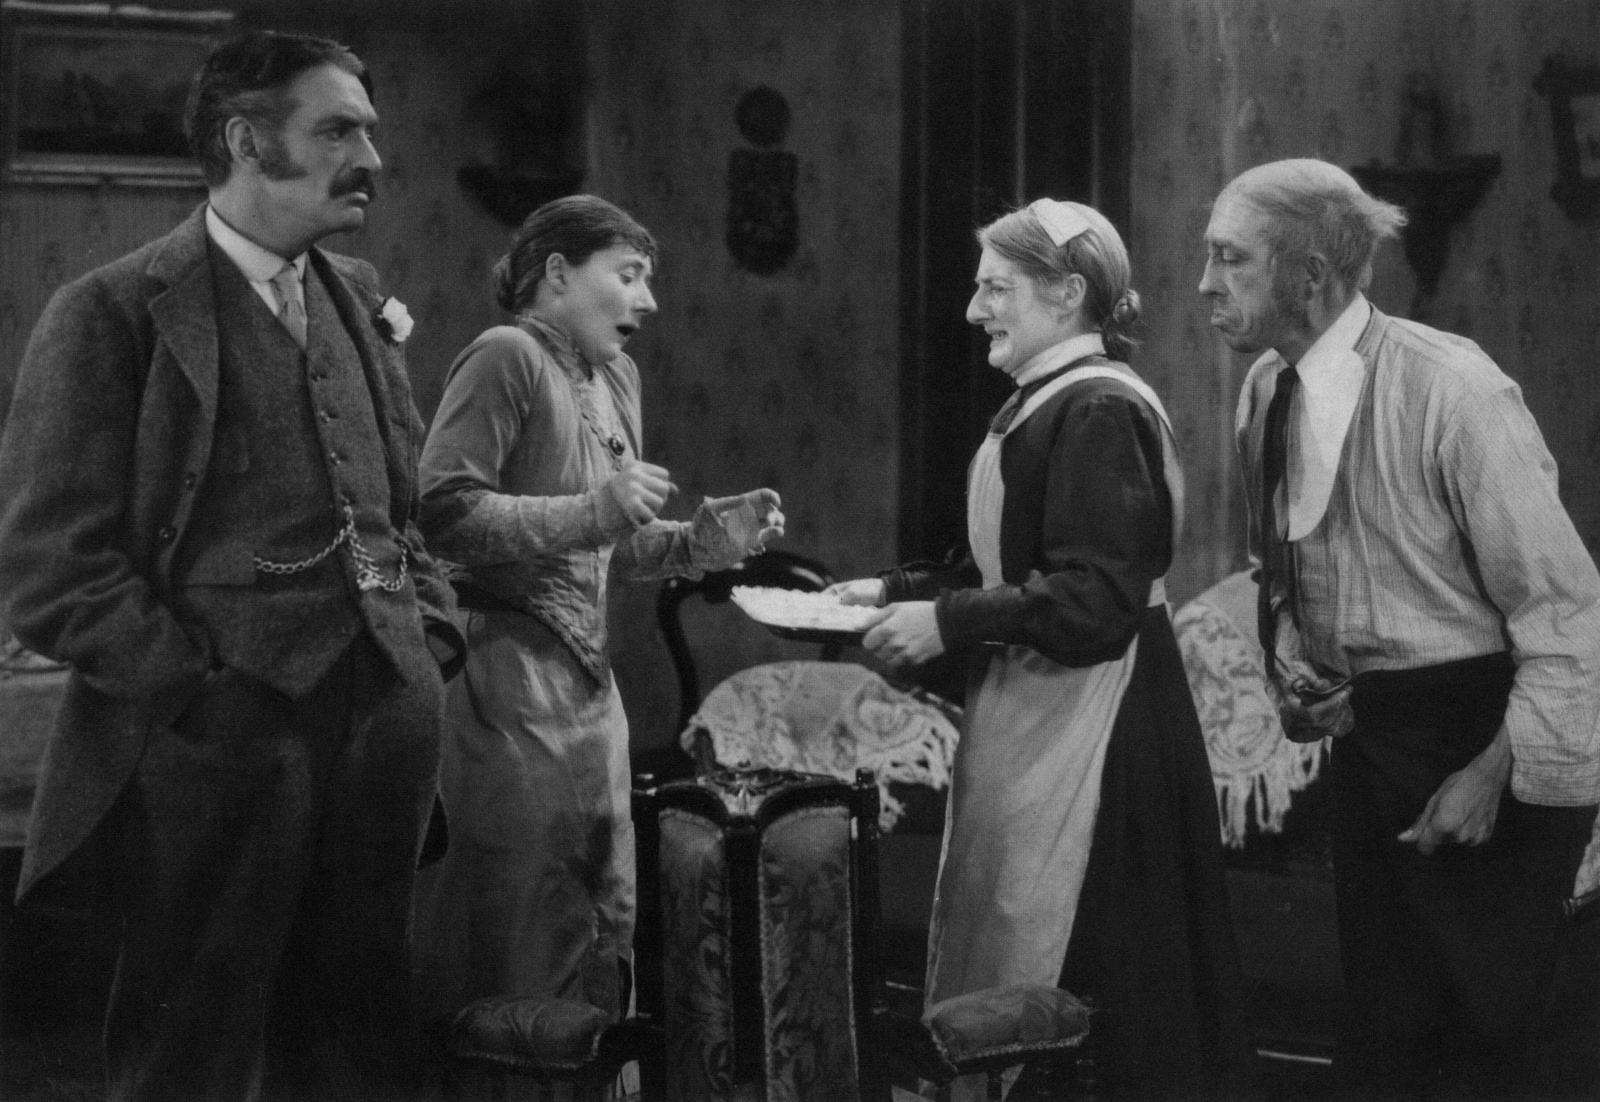 L-R: Jameson Thomas, Maud Gill, Antonia Brough and Gordon Harker in The Farmer's Wife (1928, dir. Alfred Hitchcock)